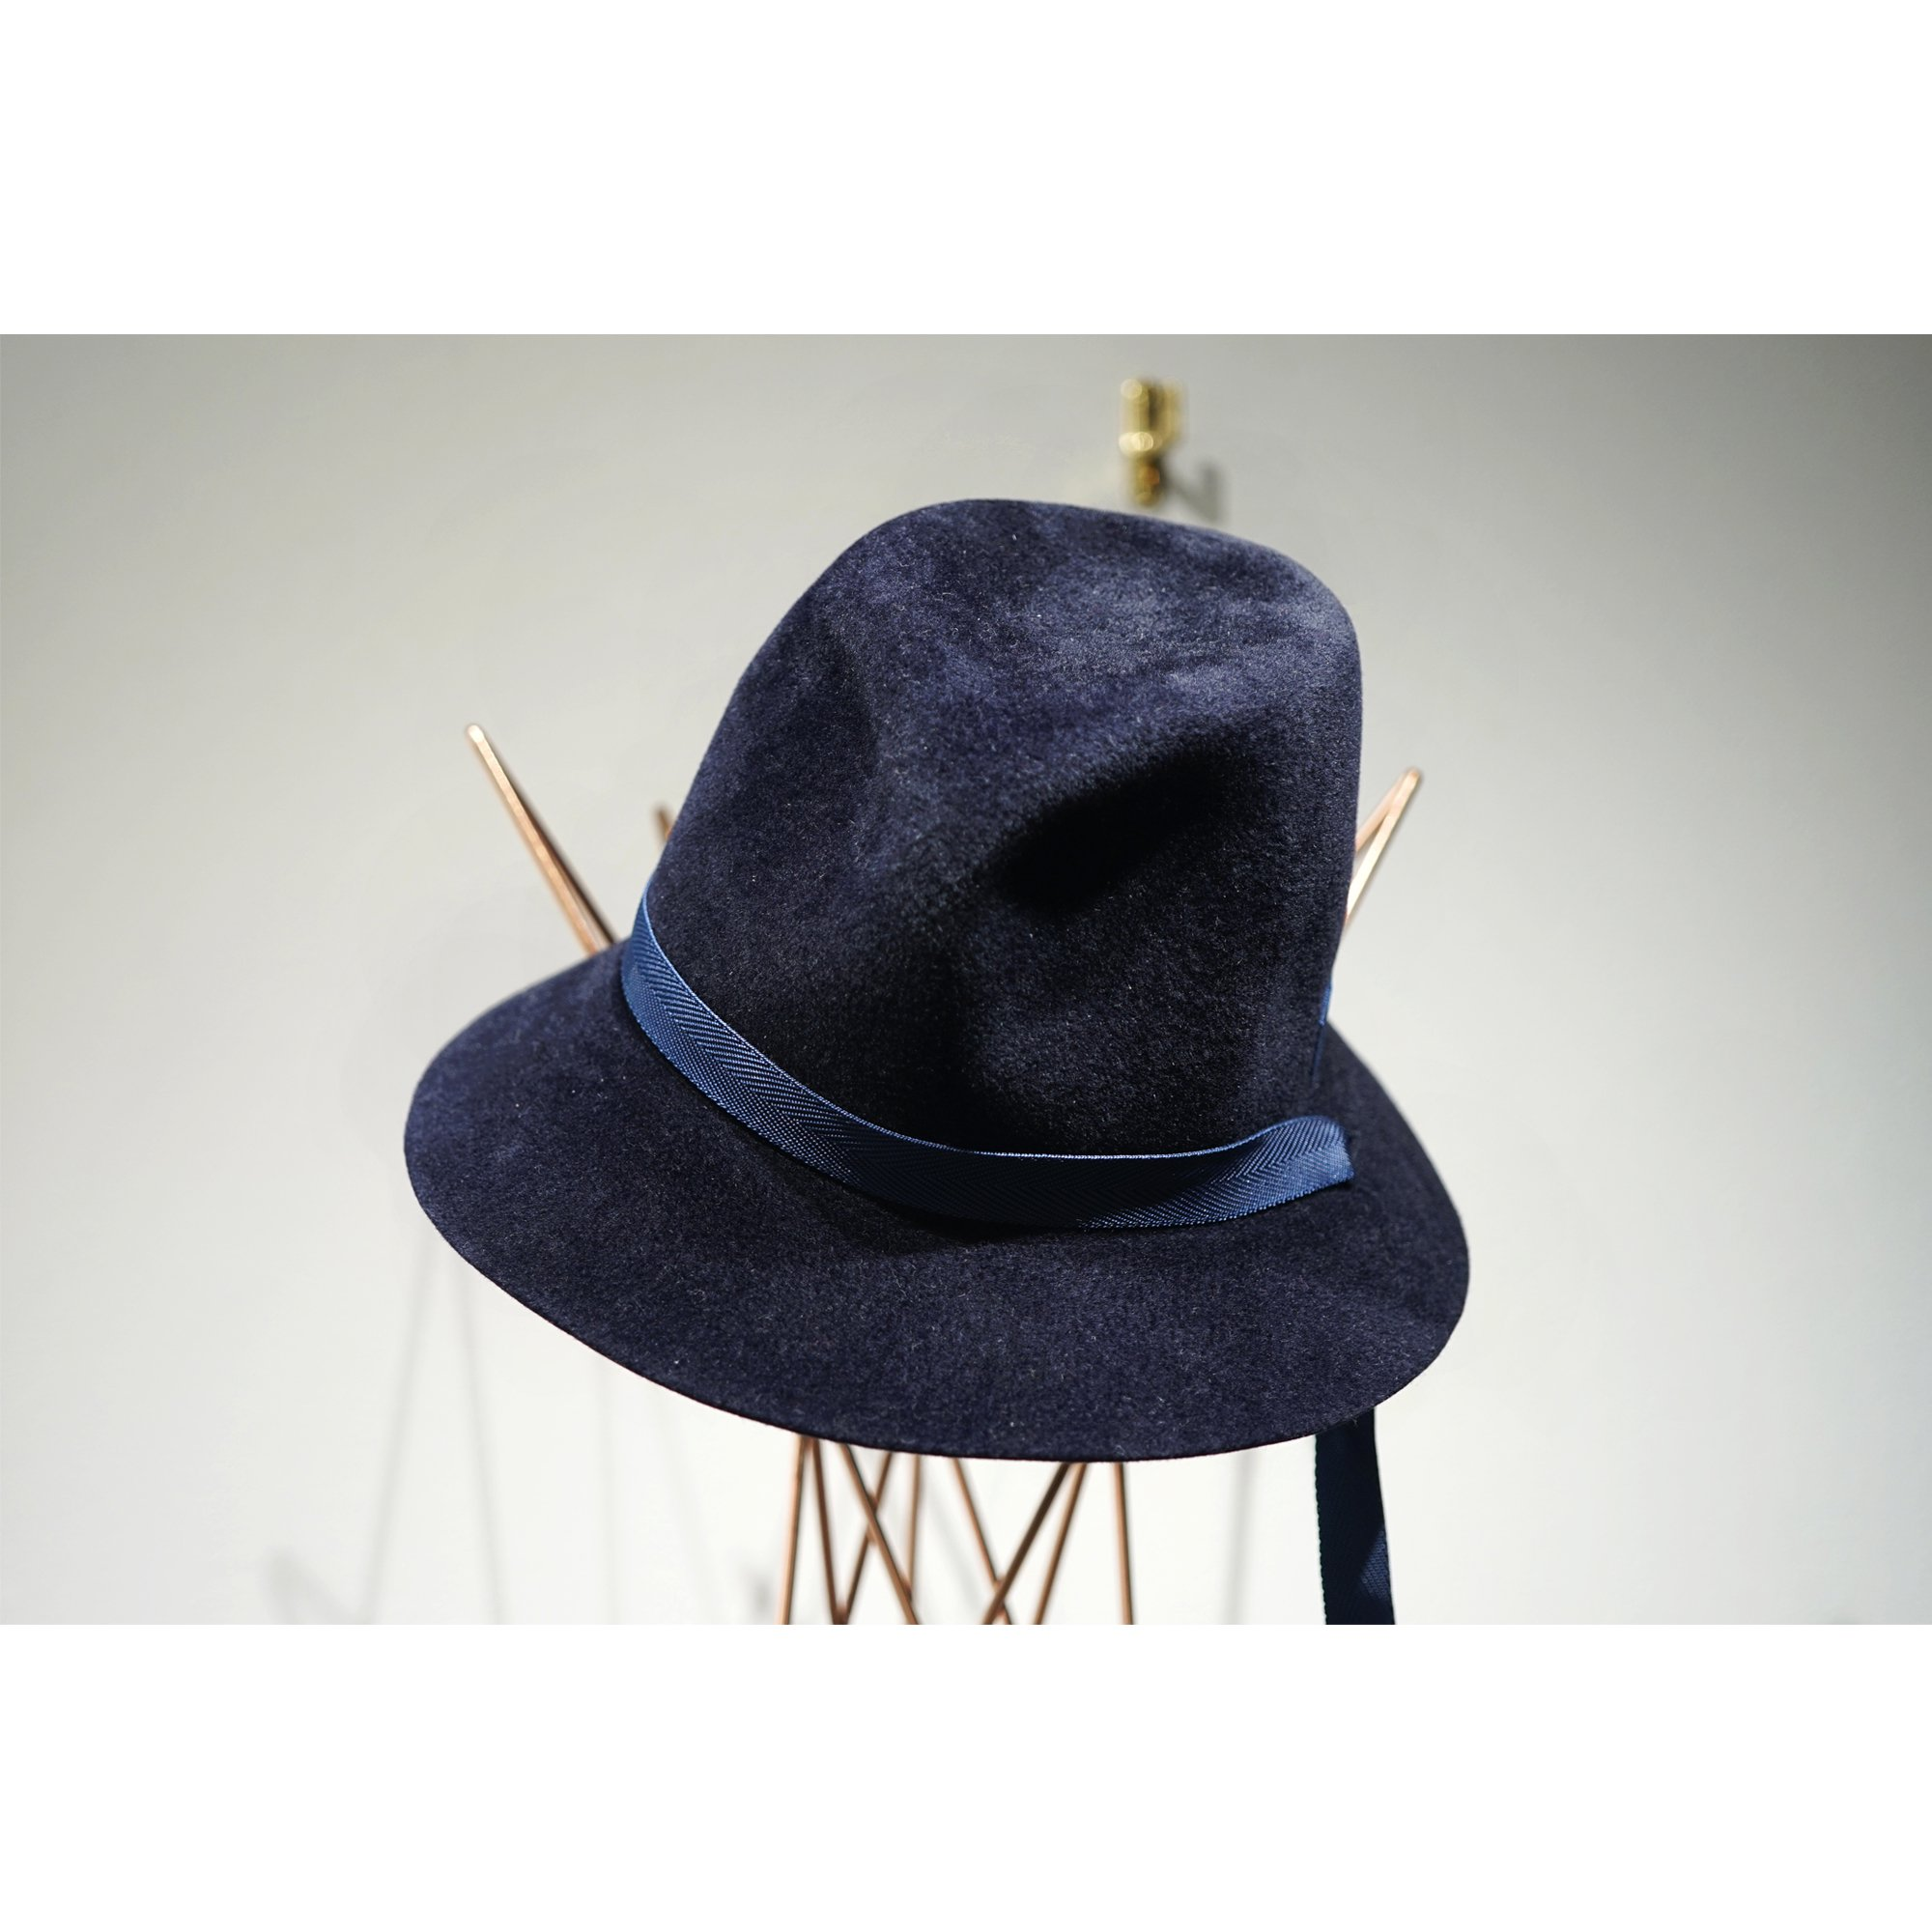 KIJIMA TAKAYUKI-ADJUSTABLE RABITT HAIR FELT HAT NAVY